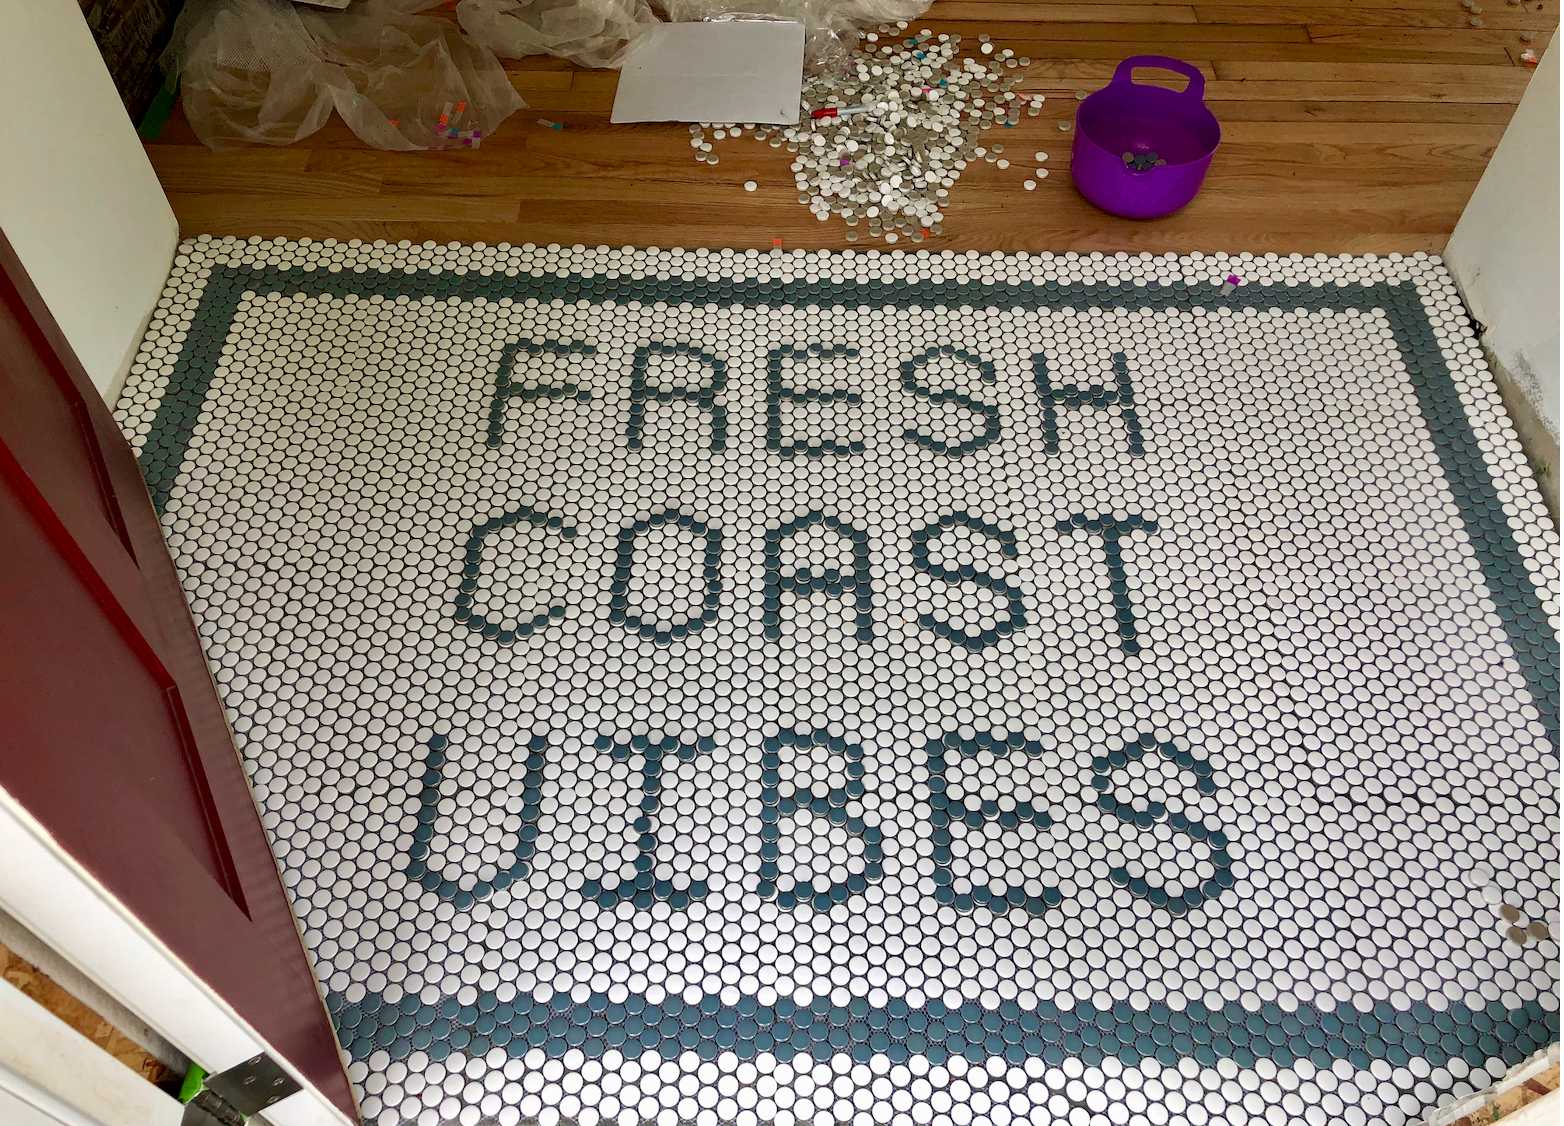 Still needs to be grouted.